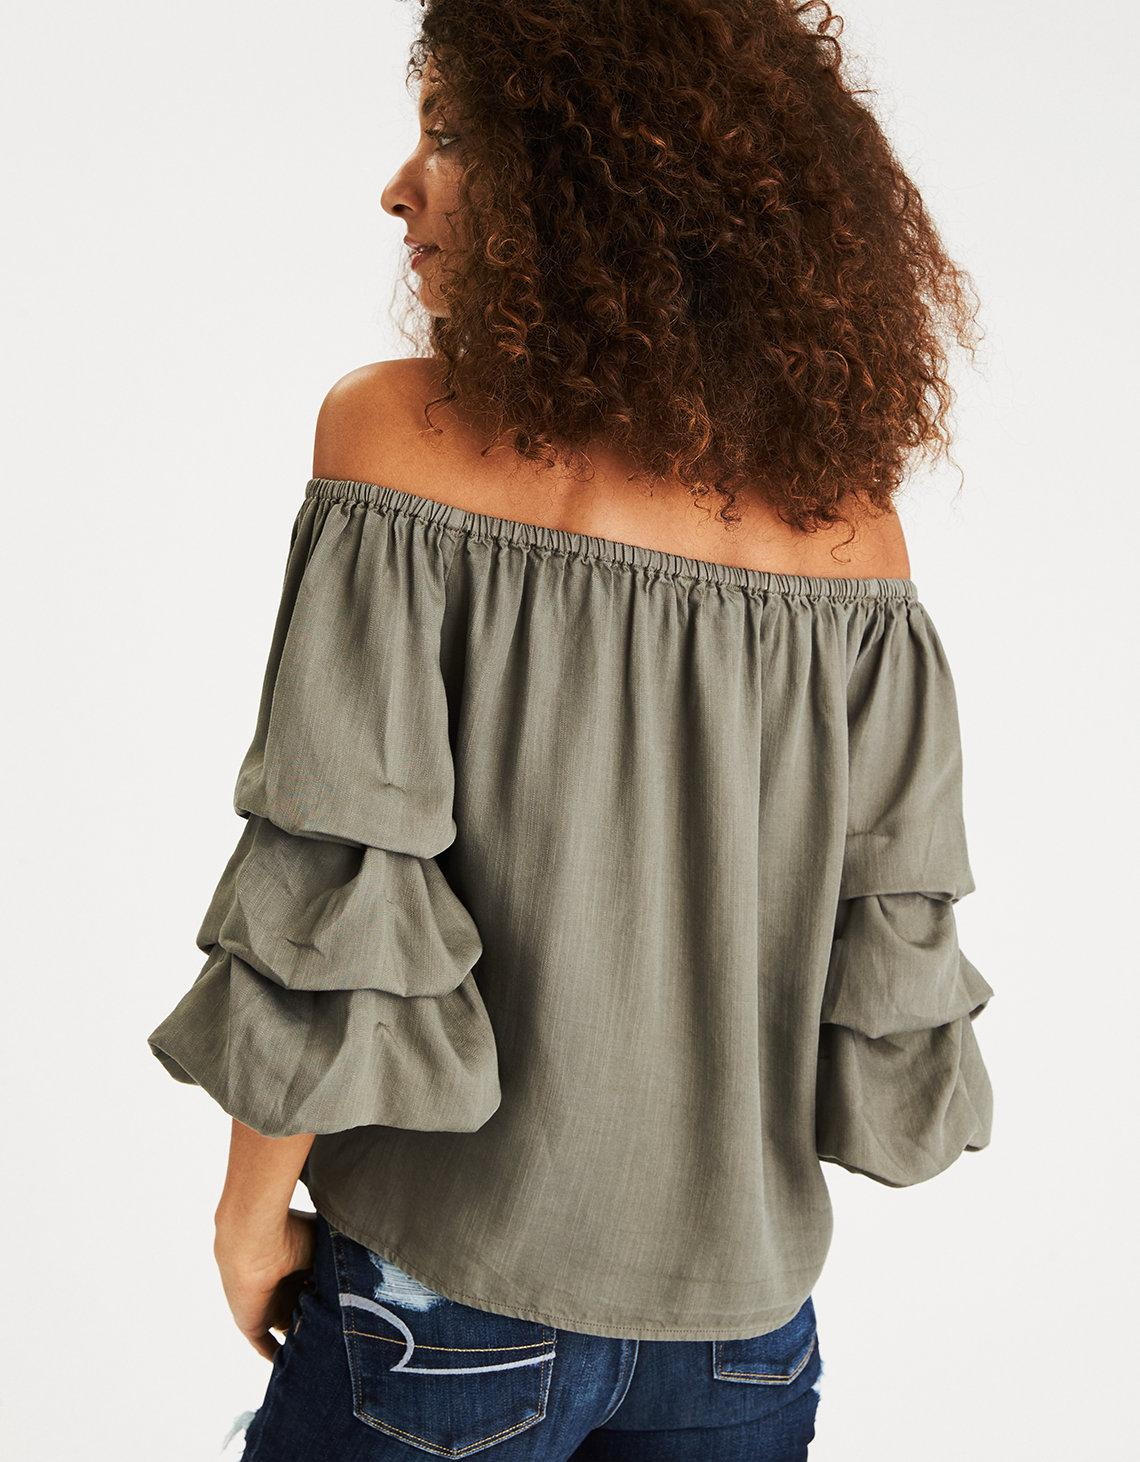 09df642af55 American Eagle Off-the-shoulder Tiered Puff Sleeve Top in Green - Lyst